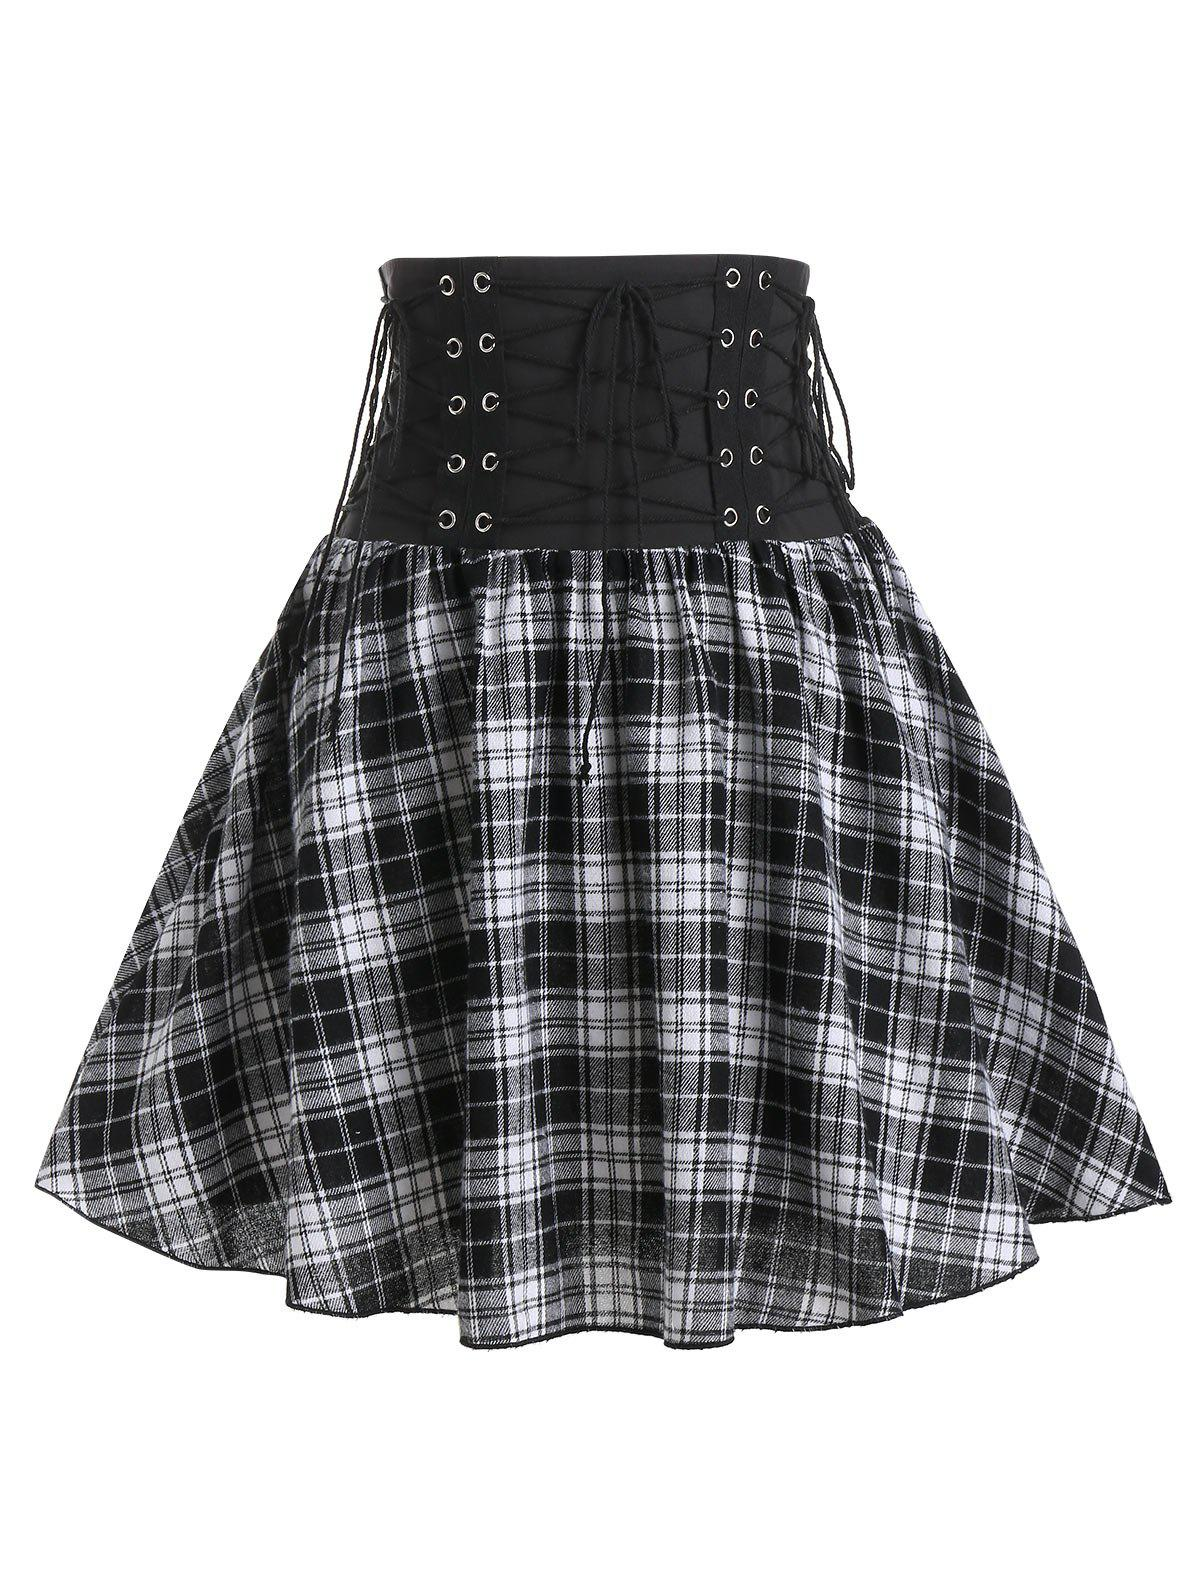 Affordable Plaid Print High Waisted Lace-up Skirt